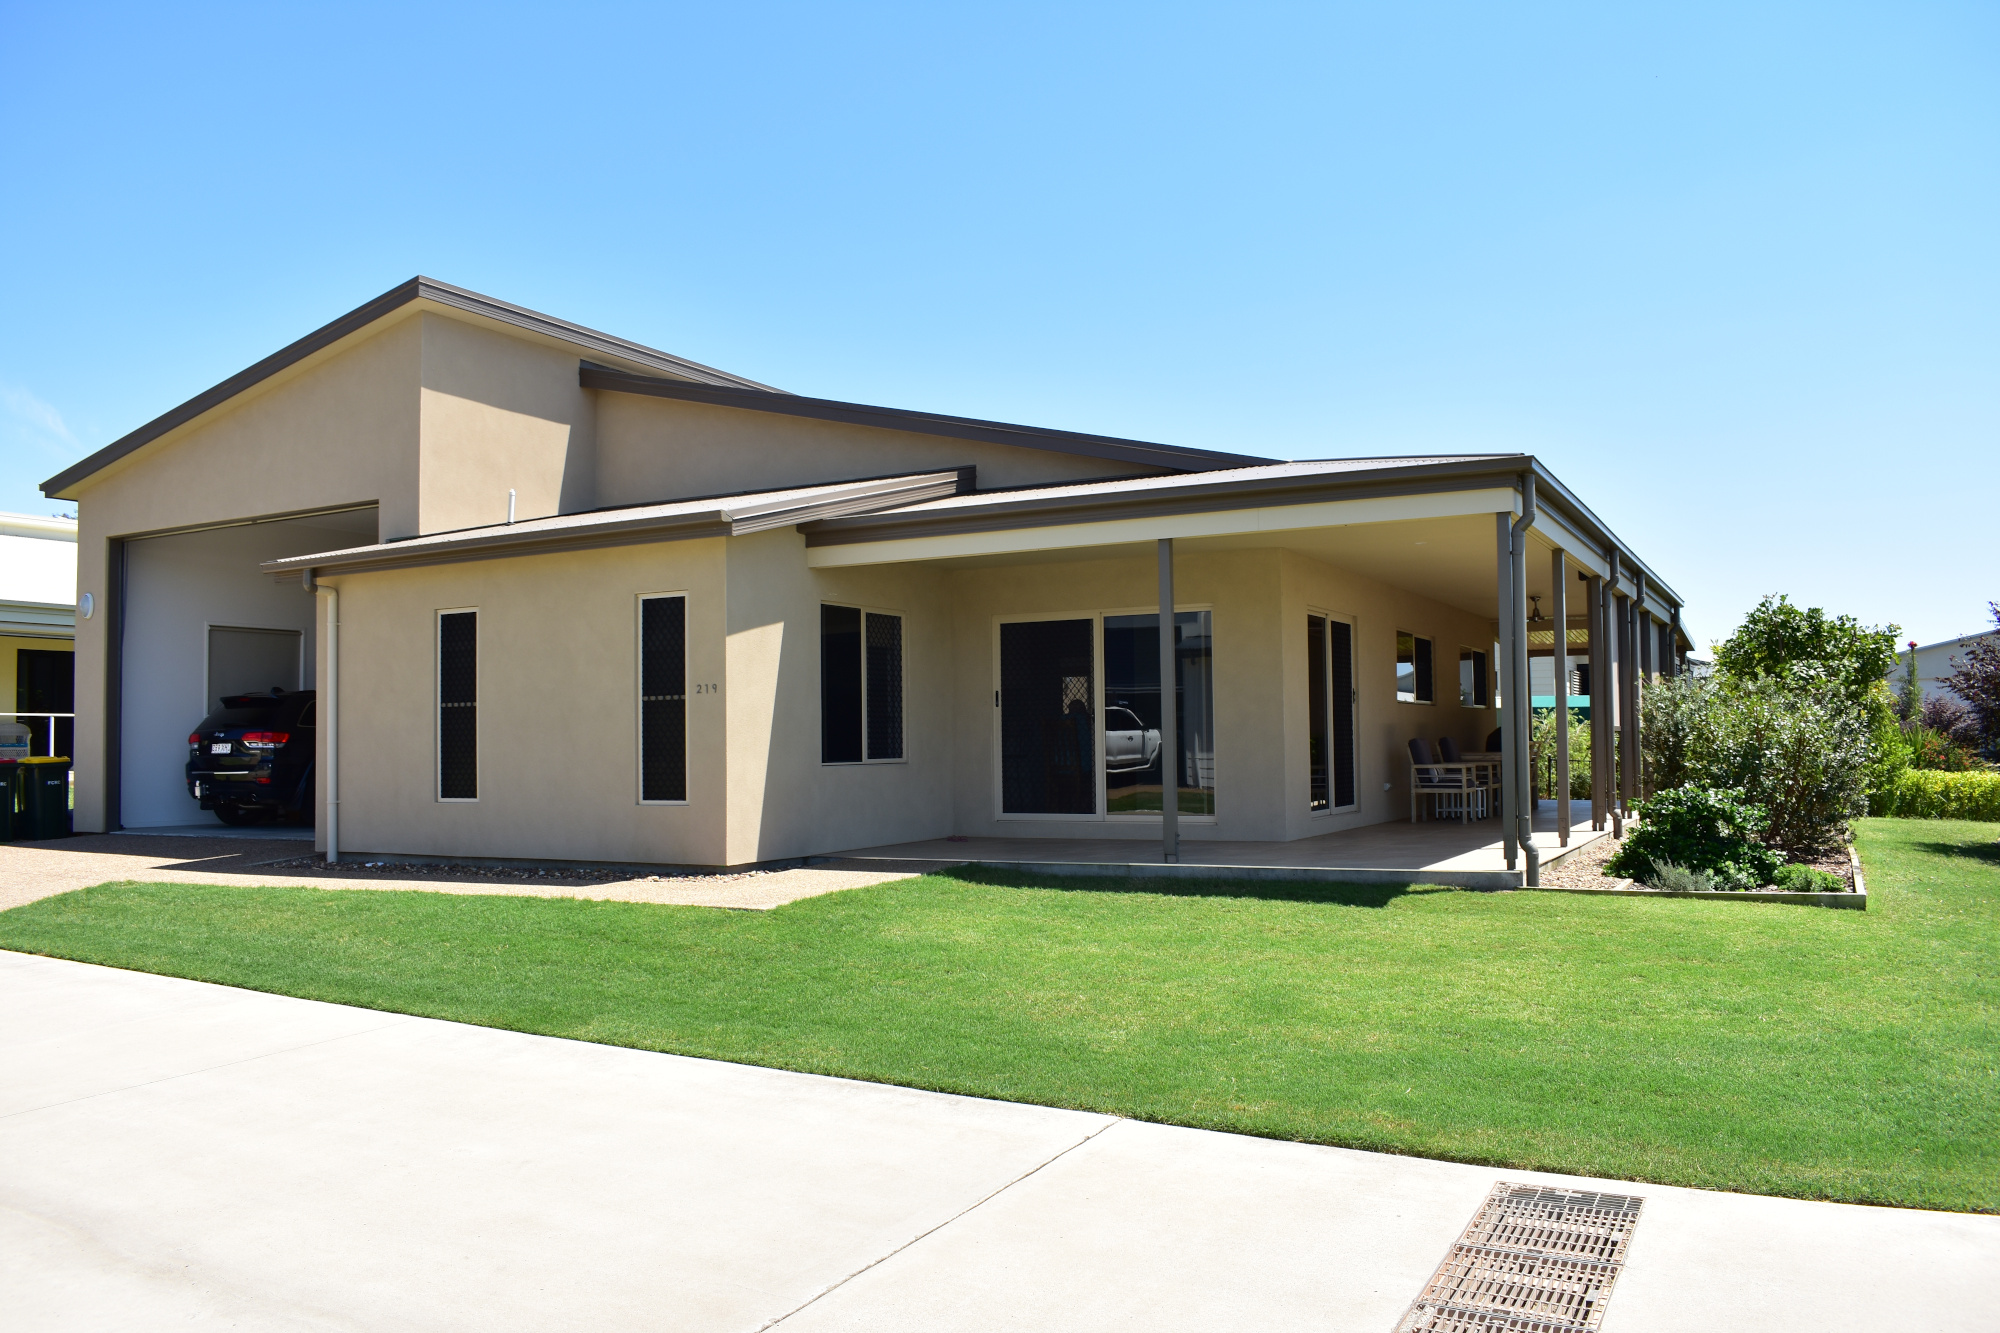 SITE_219_FRONT_1